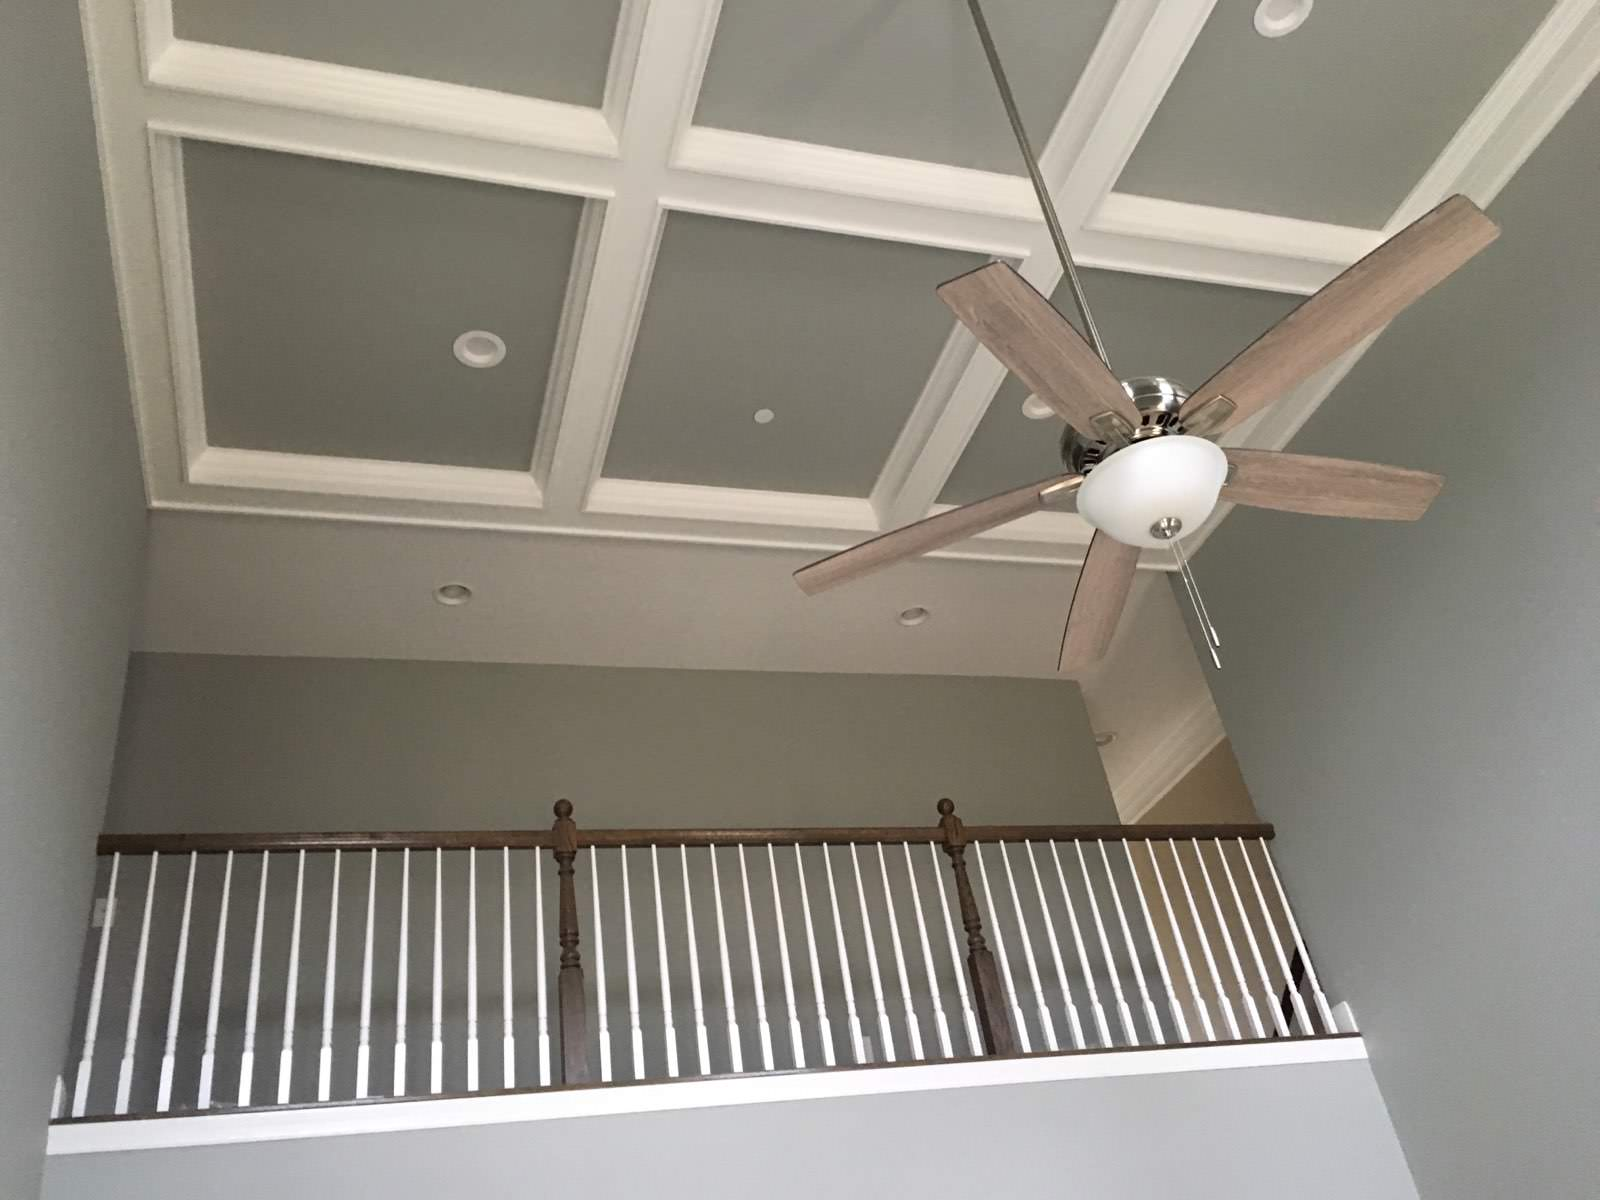 Interior ceiling and overlook